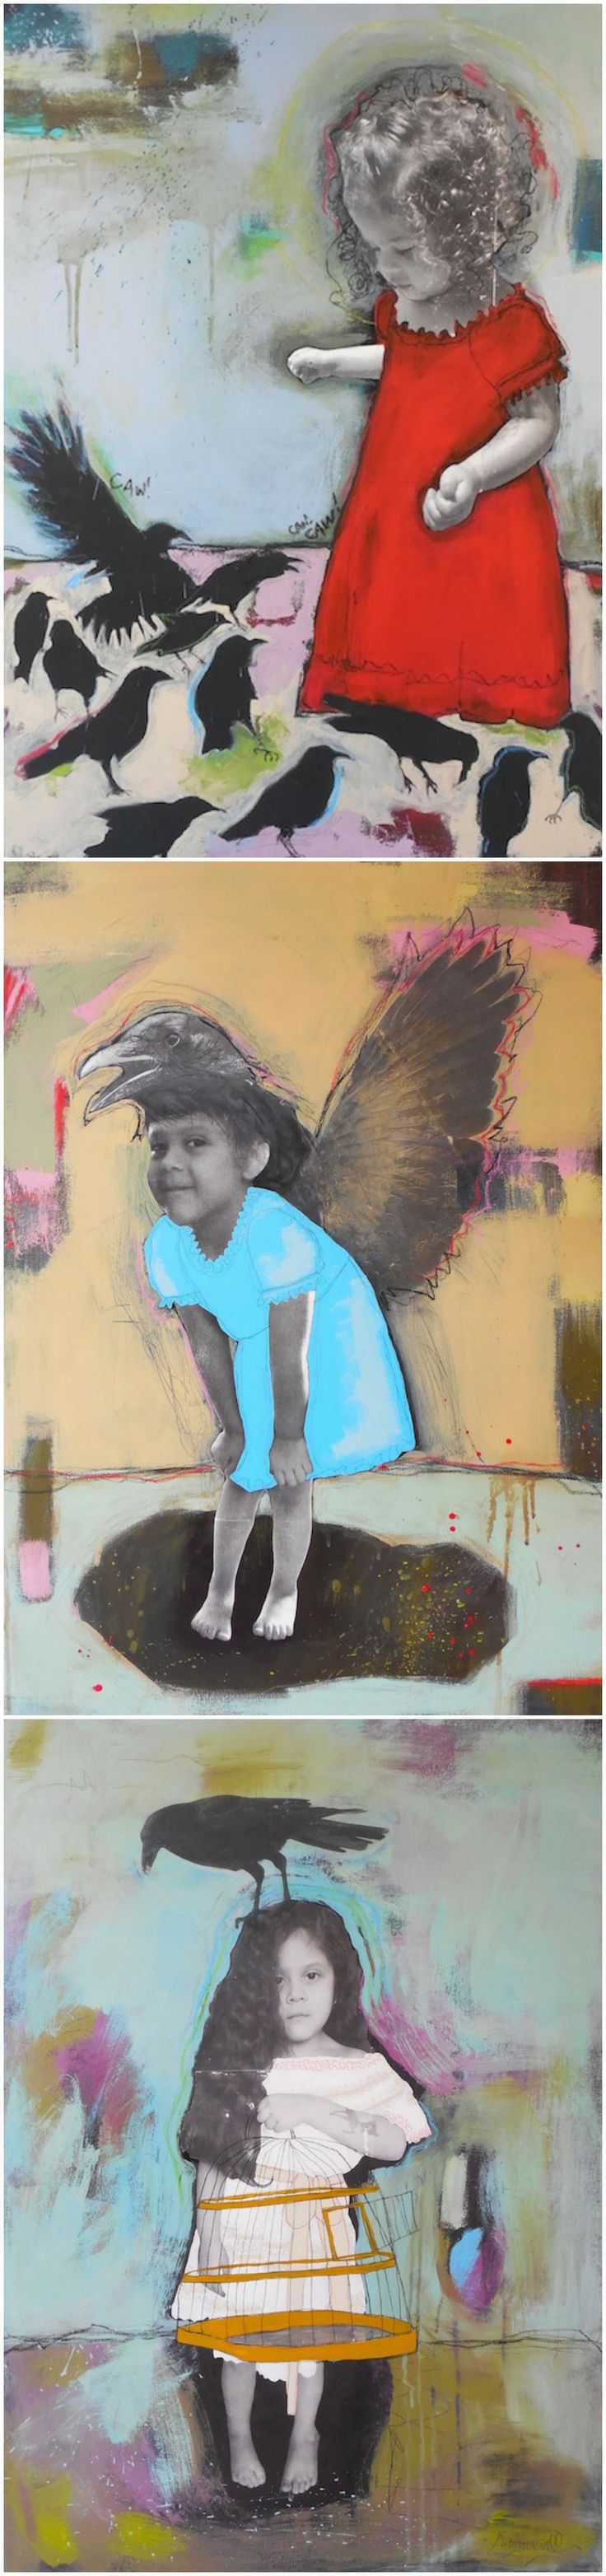 "http://ritamariagallery.blogspot.com/2014/05/the-crow-and-spirit-of-girl.html ""Purity"" At this young age, the heart is so open and pure. The crows flock to her, because her spirit shines so bright. They understand her and she understands them. Together they dance in rhythm."